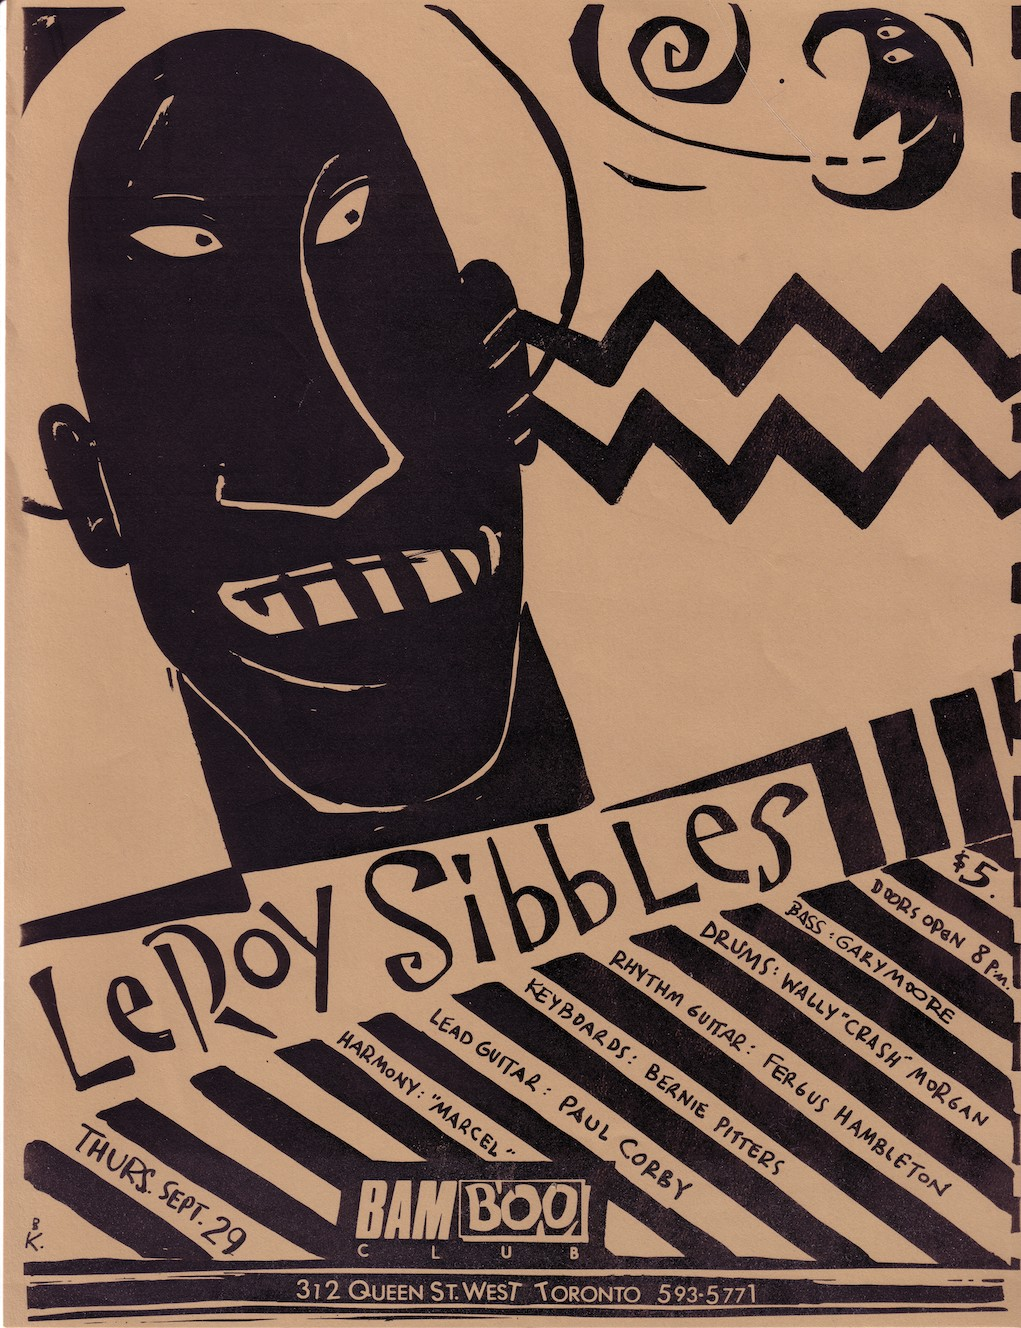 "A brown and black hand-drawn poster for a music performance featuring Leroy Sibbles at the BamBoo Club. The poster features the hand-drawn face of a man's face with his eyes looking to the left. Underneath are the words ""Leroy Sibbles"" as well as details about the performance that alternate with black diagonal stripes."